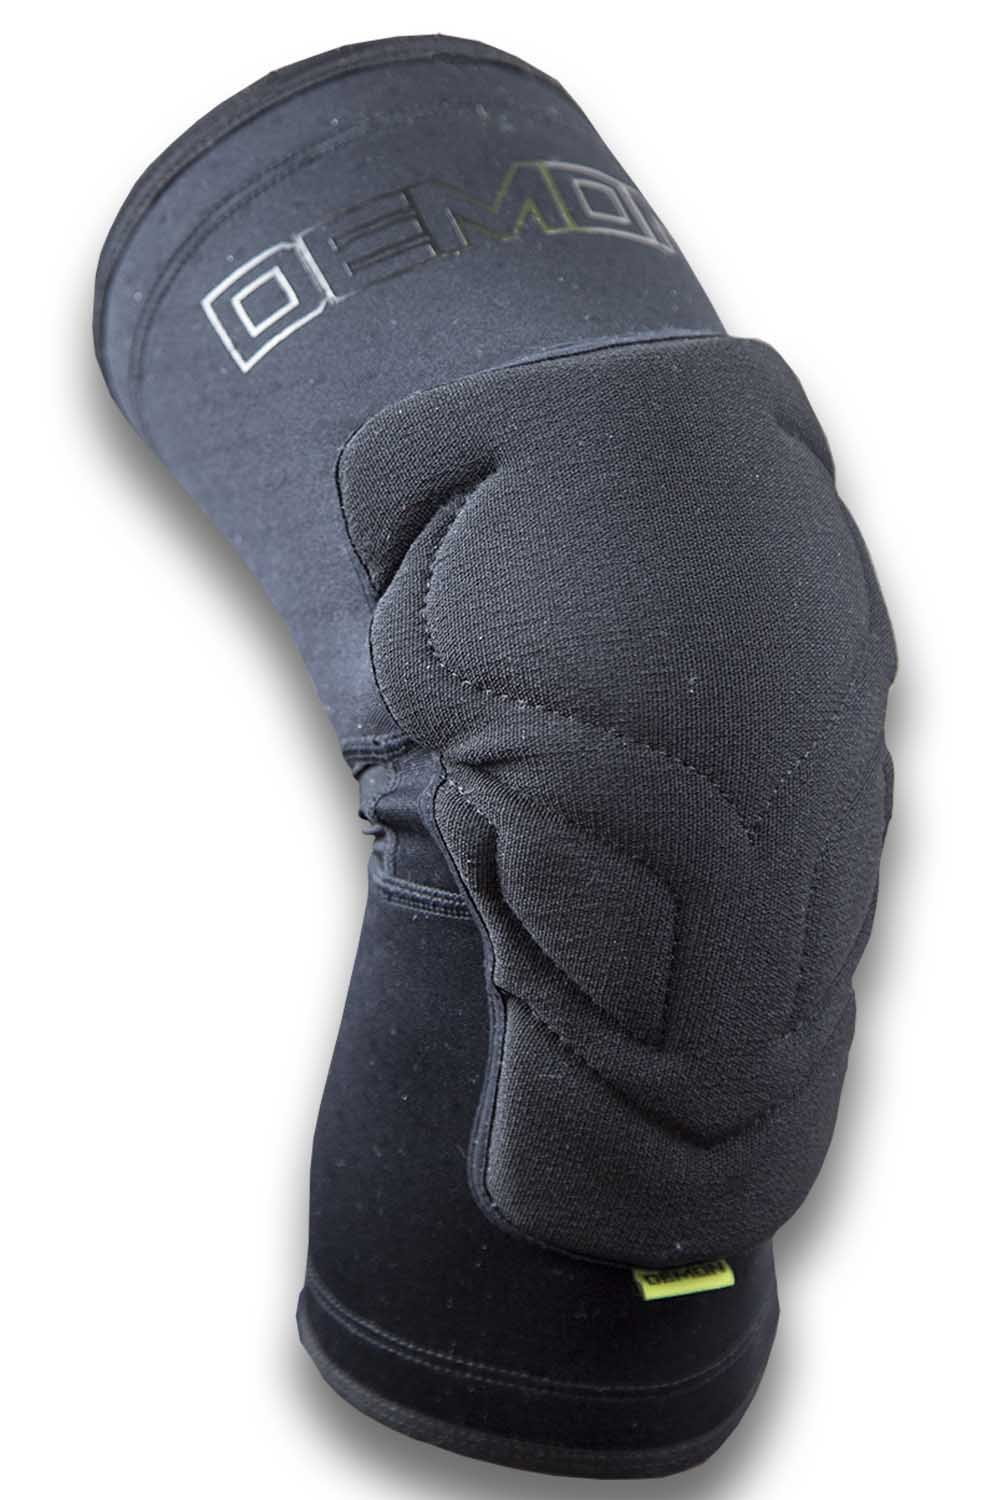 Demon Enduro Mountain Bike Knee Pads}